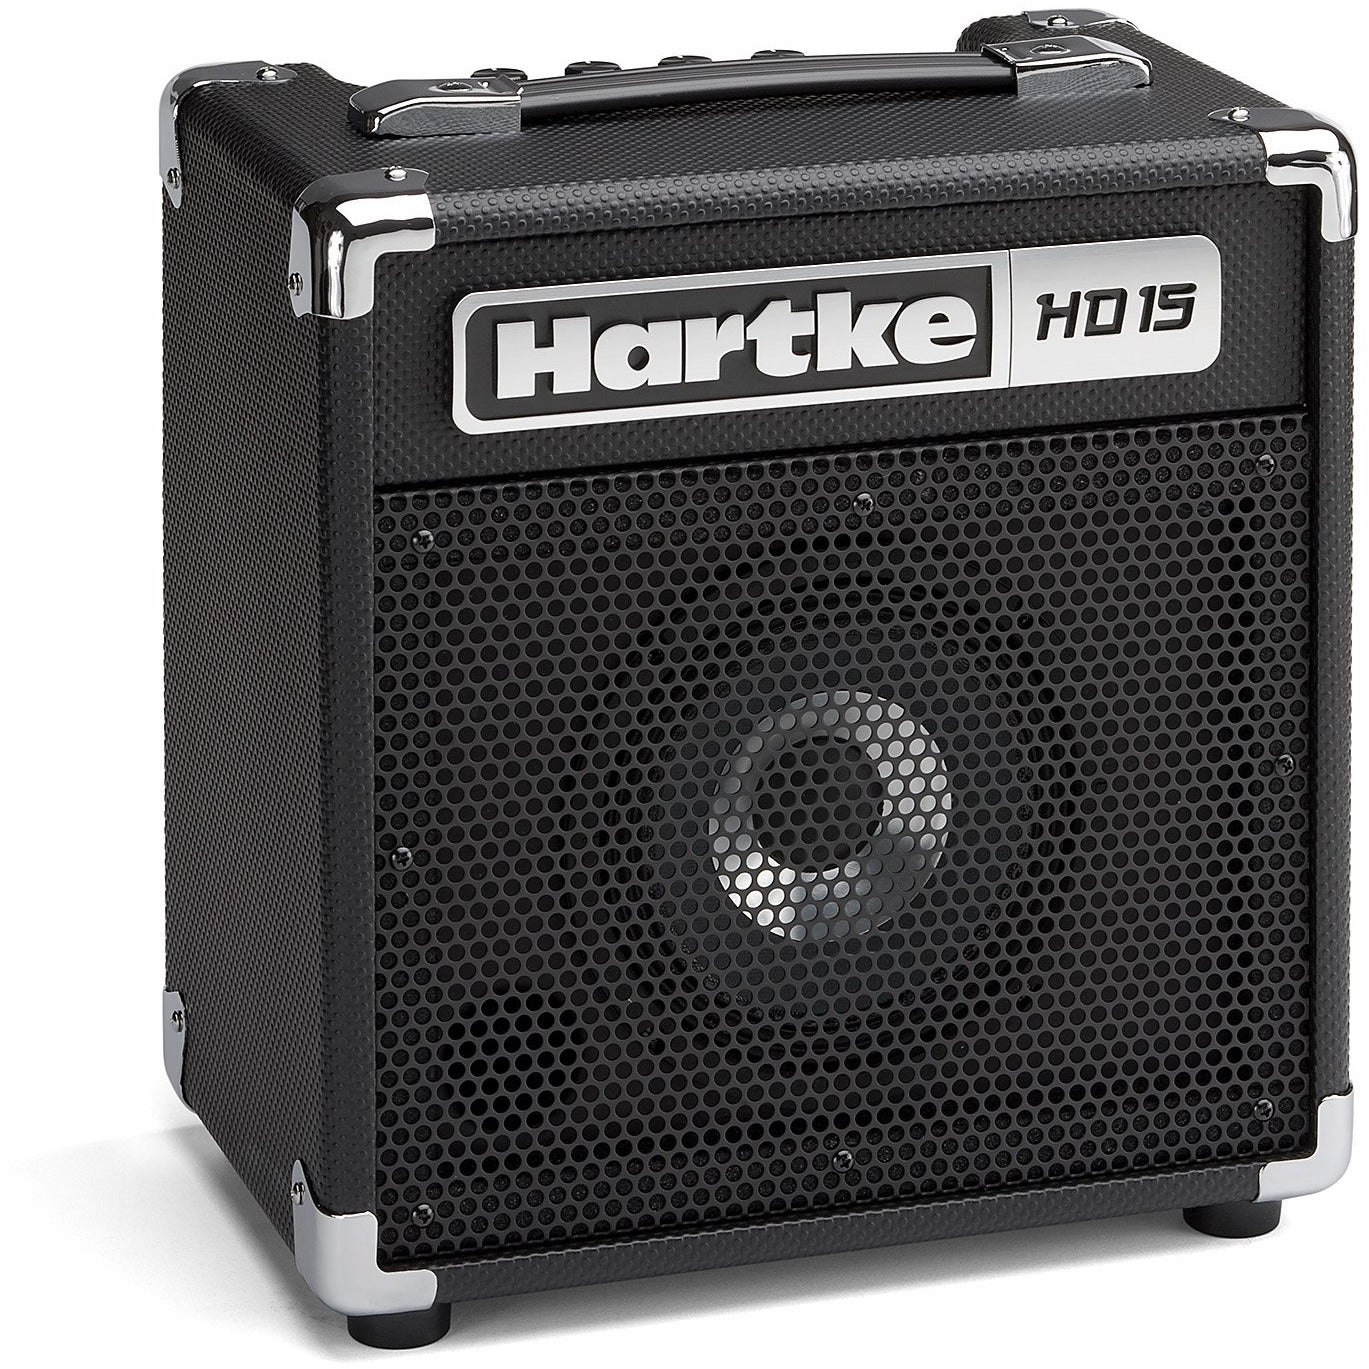 "Hartke HD15 15 watts,6.5"" HyDrive paper and aluminum cone driver"